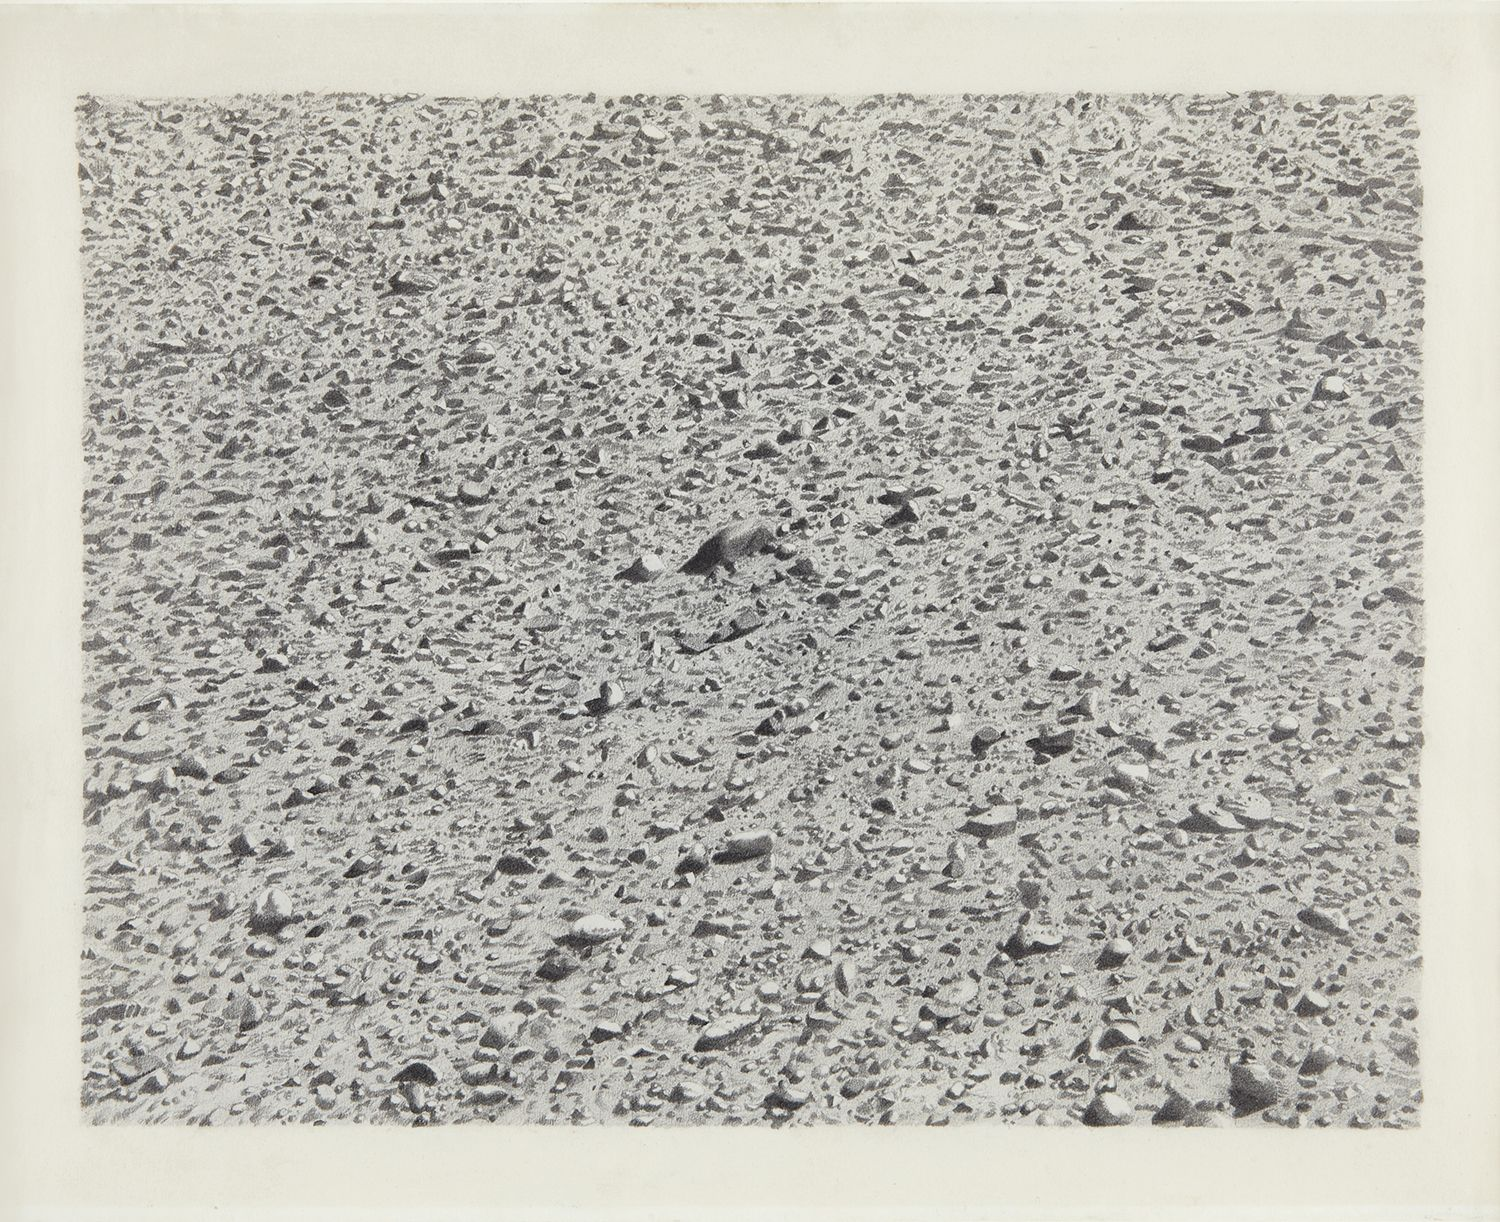 Vija Celmins, Untitled (Regular Desert), 1973